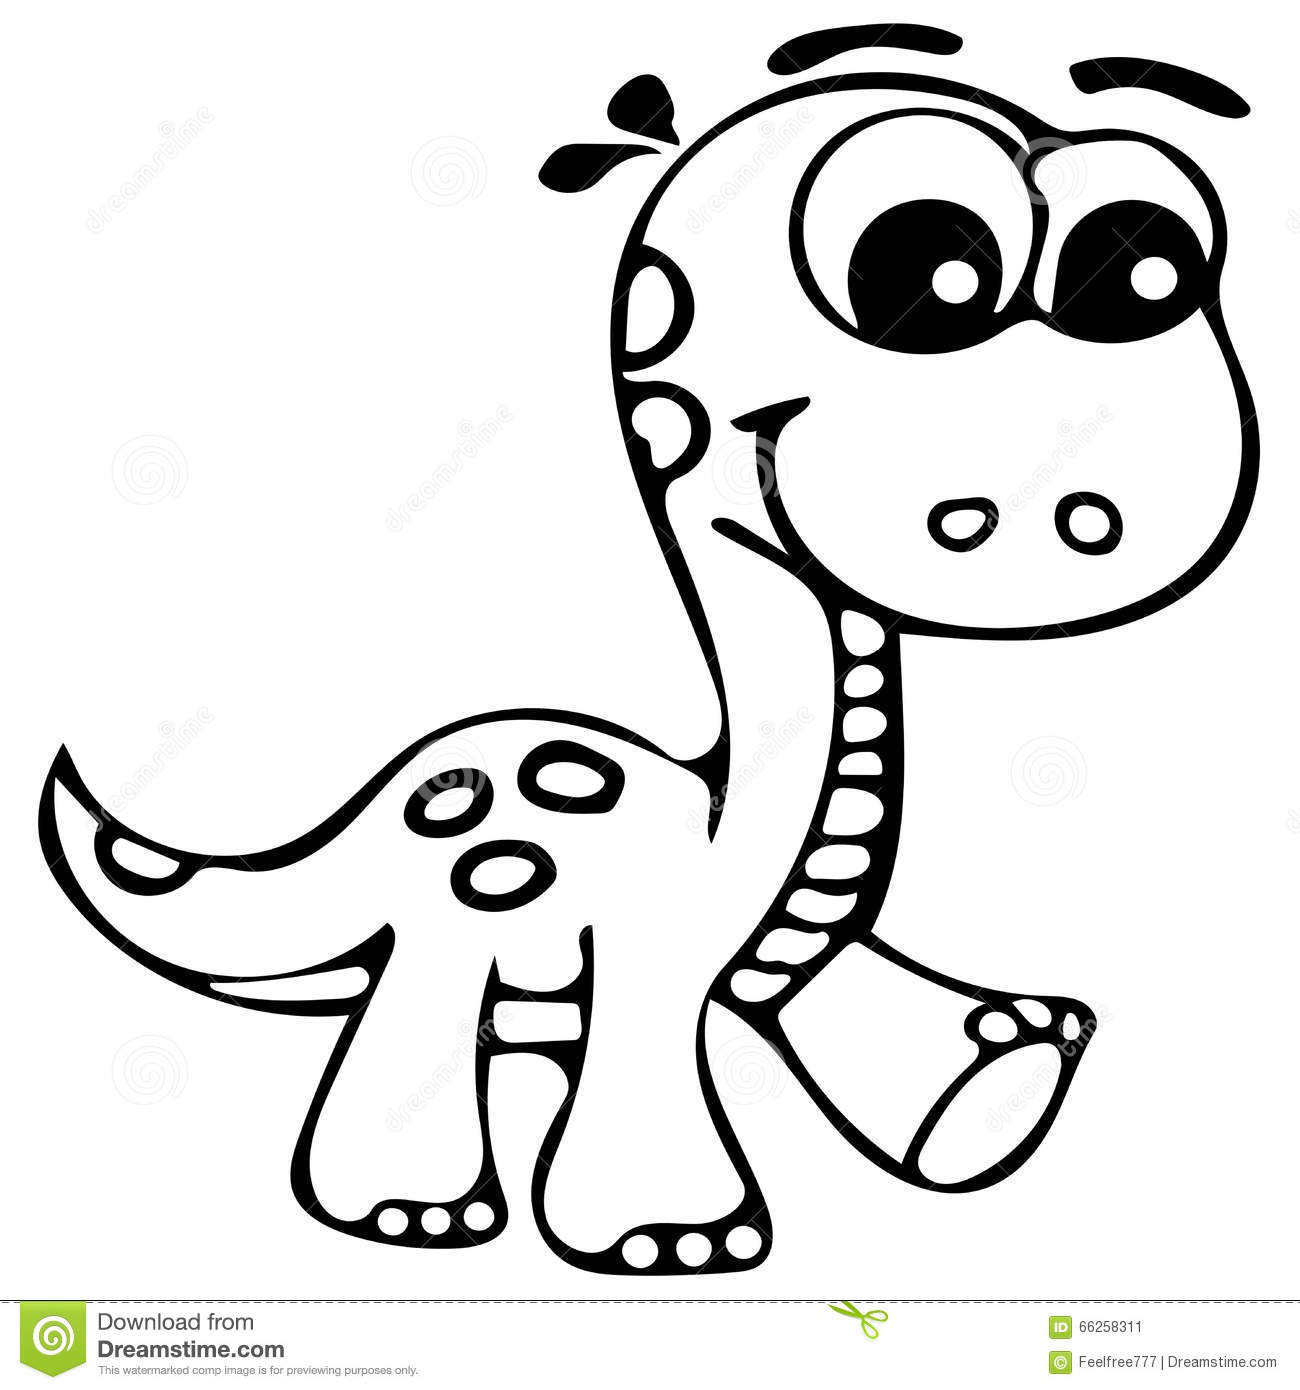 Cute T Rex Drawing at GetDrawings.com | Free for personal use Cute T ...